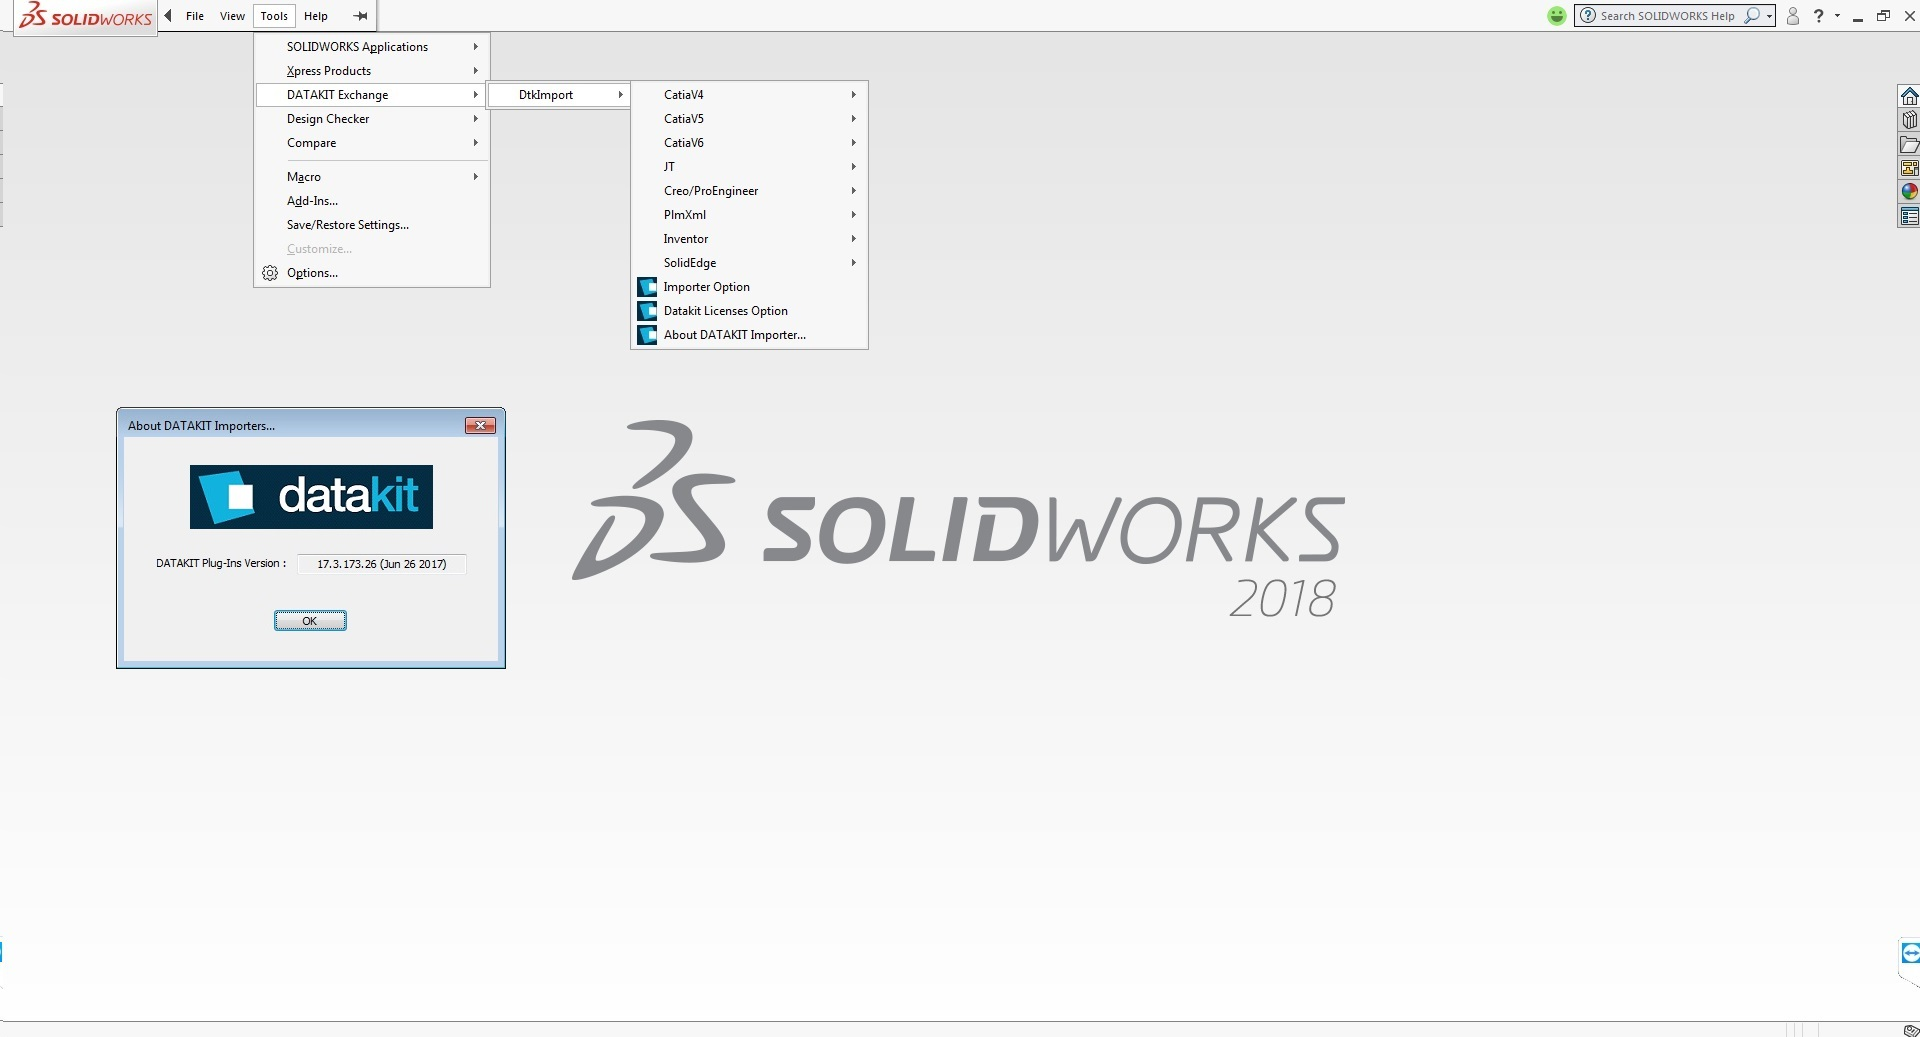 Working with DATAKIT 2017.4 Import-Export Plugins for SolidWorks 2010-2018